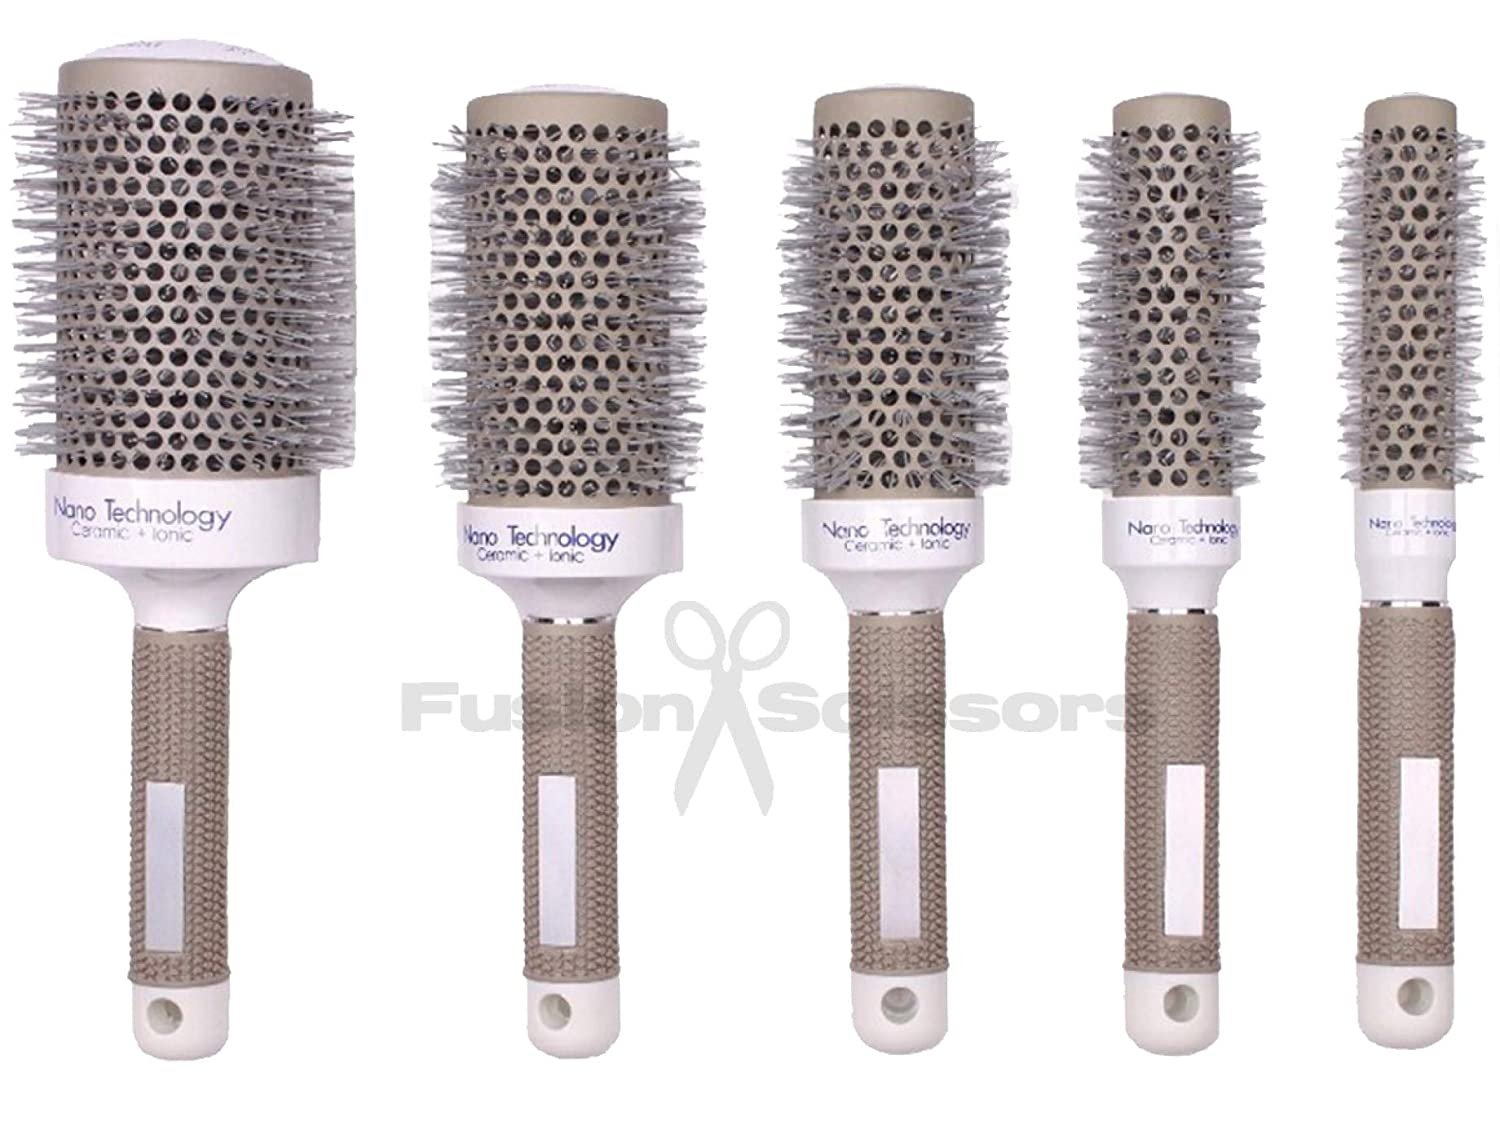 Salone di parrucchieri tondo Set spazzole in ceramica tecnologia ionica grigio (4pz) Hairdressers Salon Round Set Brushes Ceramic Grey Ionic Technology (4pcs)